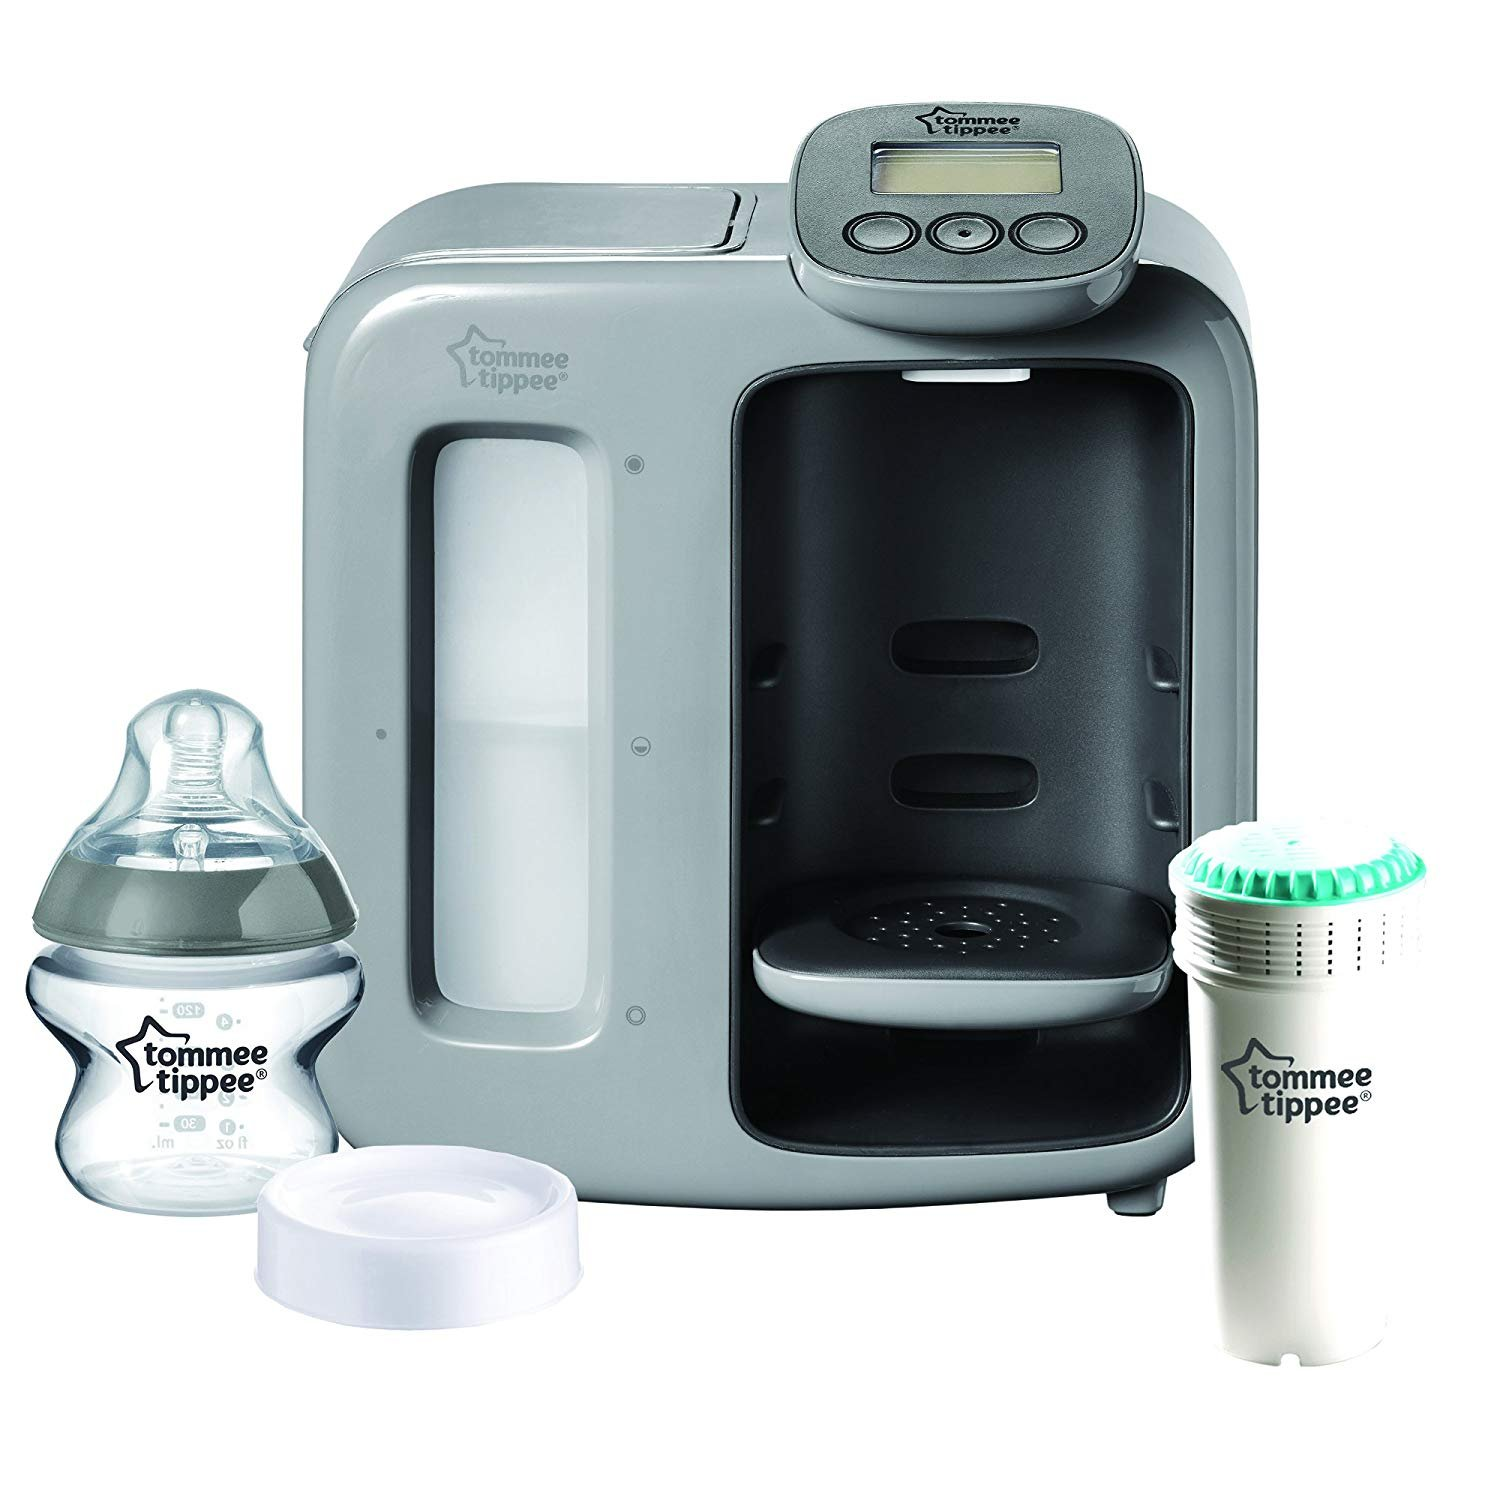 Tommee Tippee Perfect Prep Day & Night, Grey